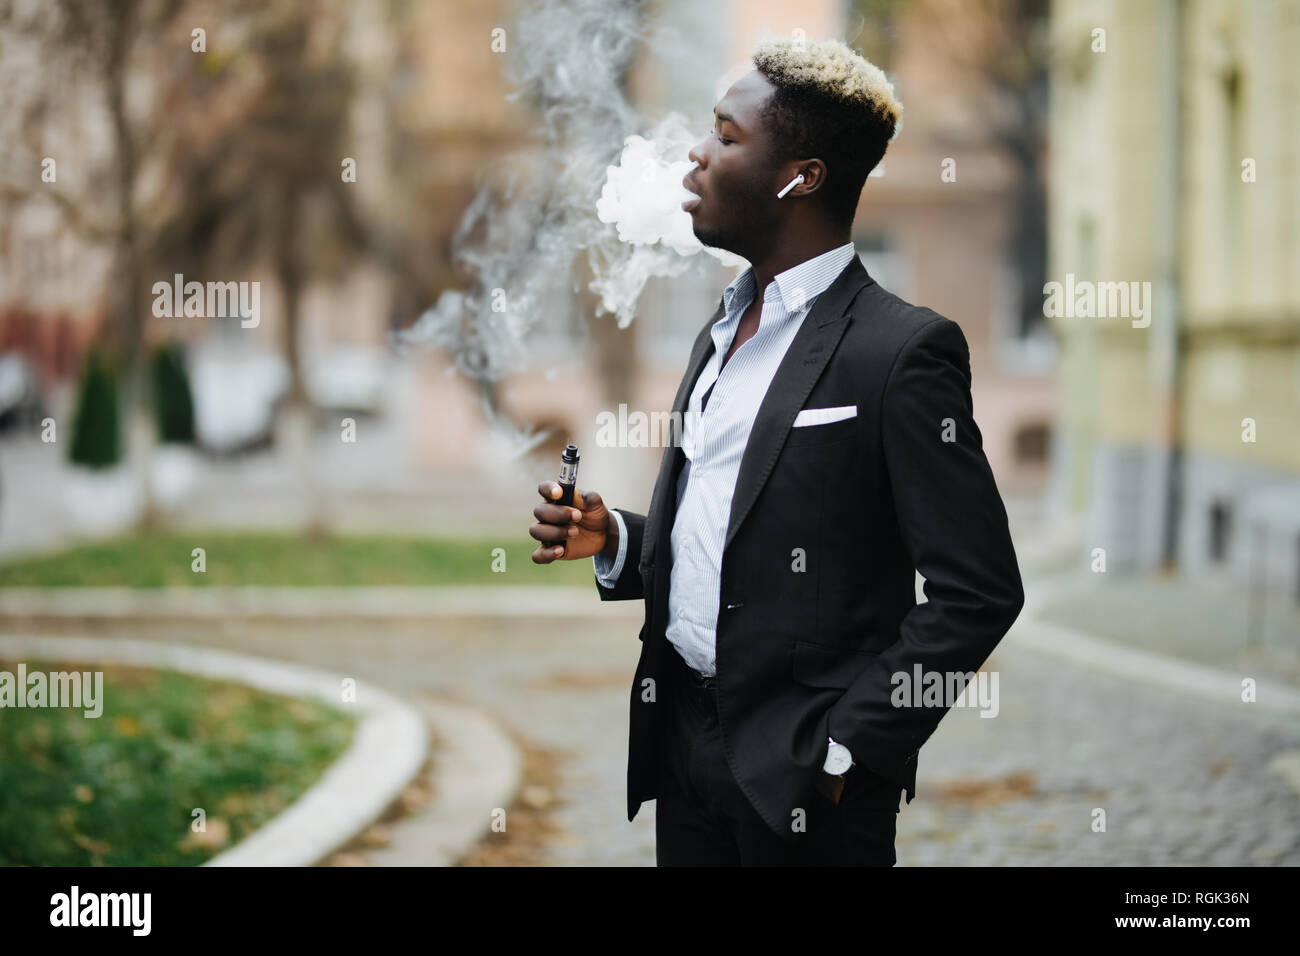 Handsome afro american business man with e-cigarette with smoke cloude standing on the city street - Stock Image